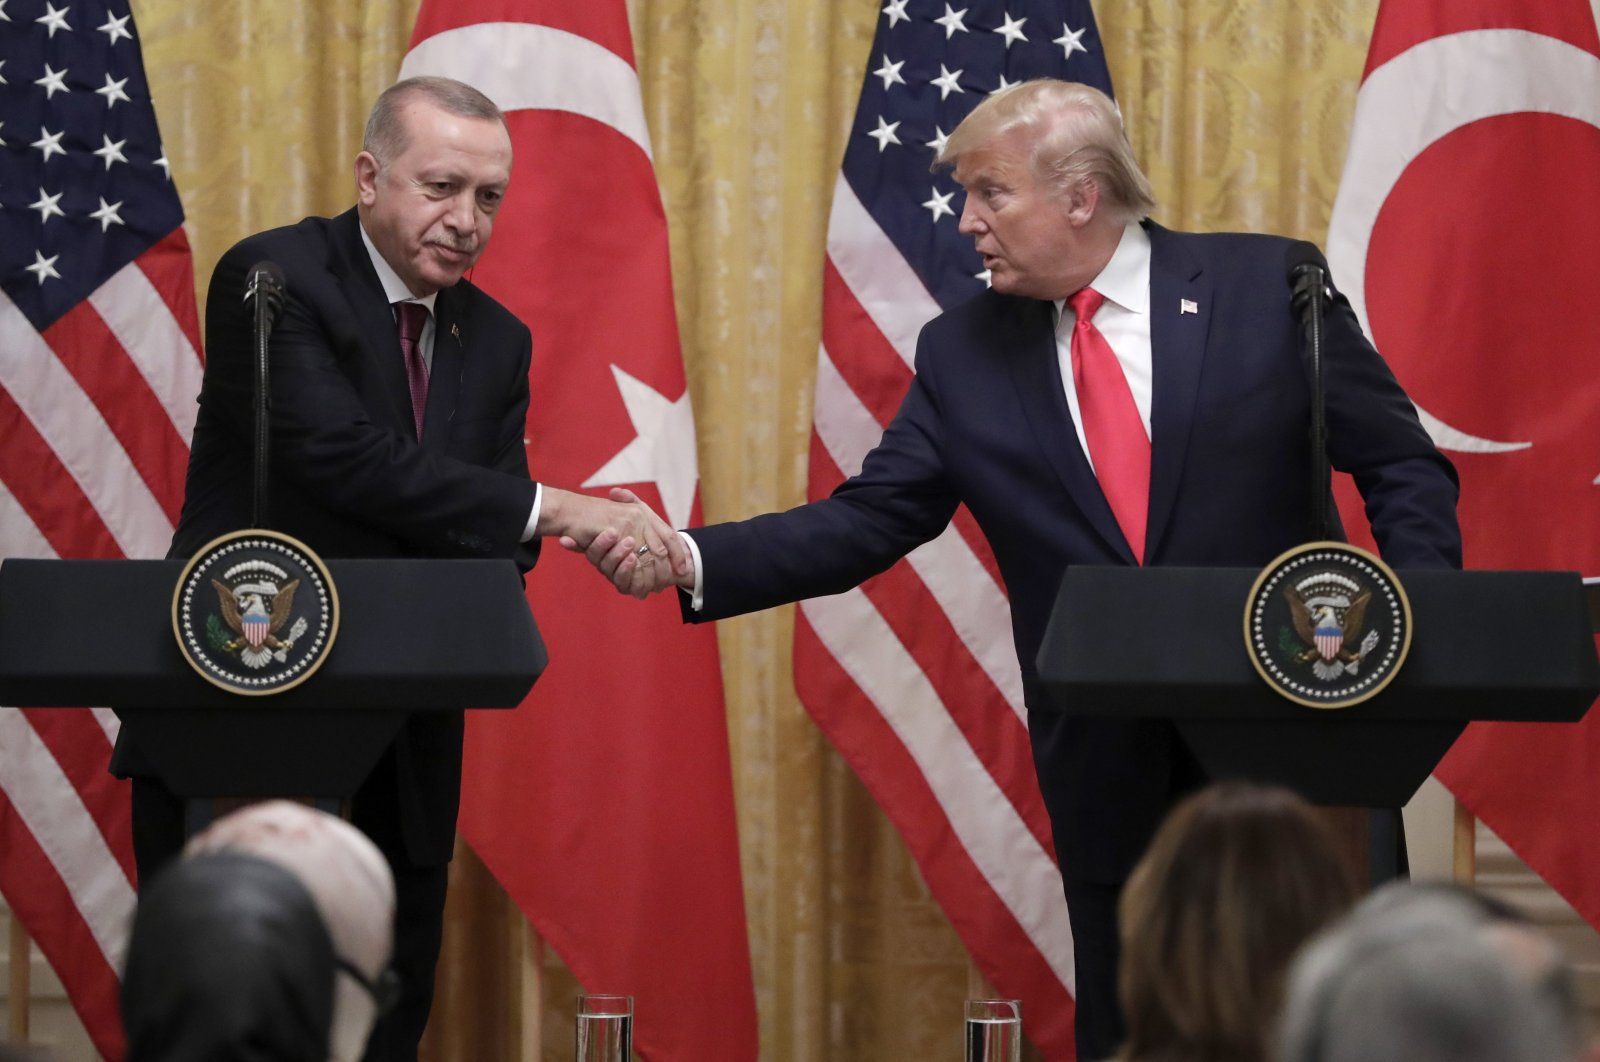 President Recep Tayyip Erdoğan shakes hands with President Donald Trump during a news conference in the East Room of the White House, Wednesday, Nov. 13, 2019, in Washington. (AP Photo)